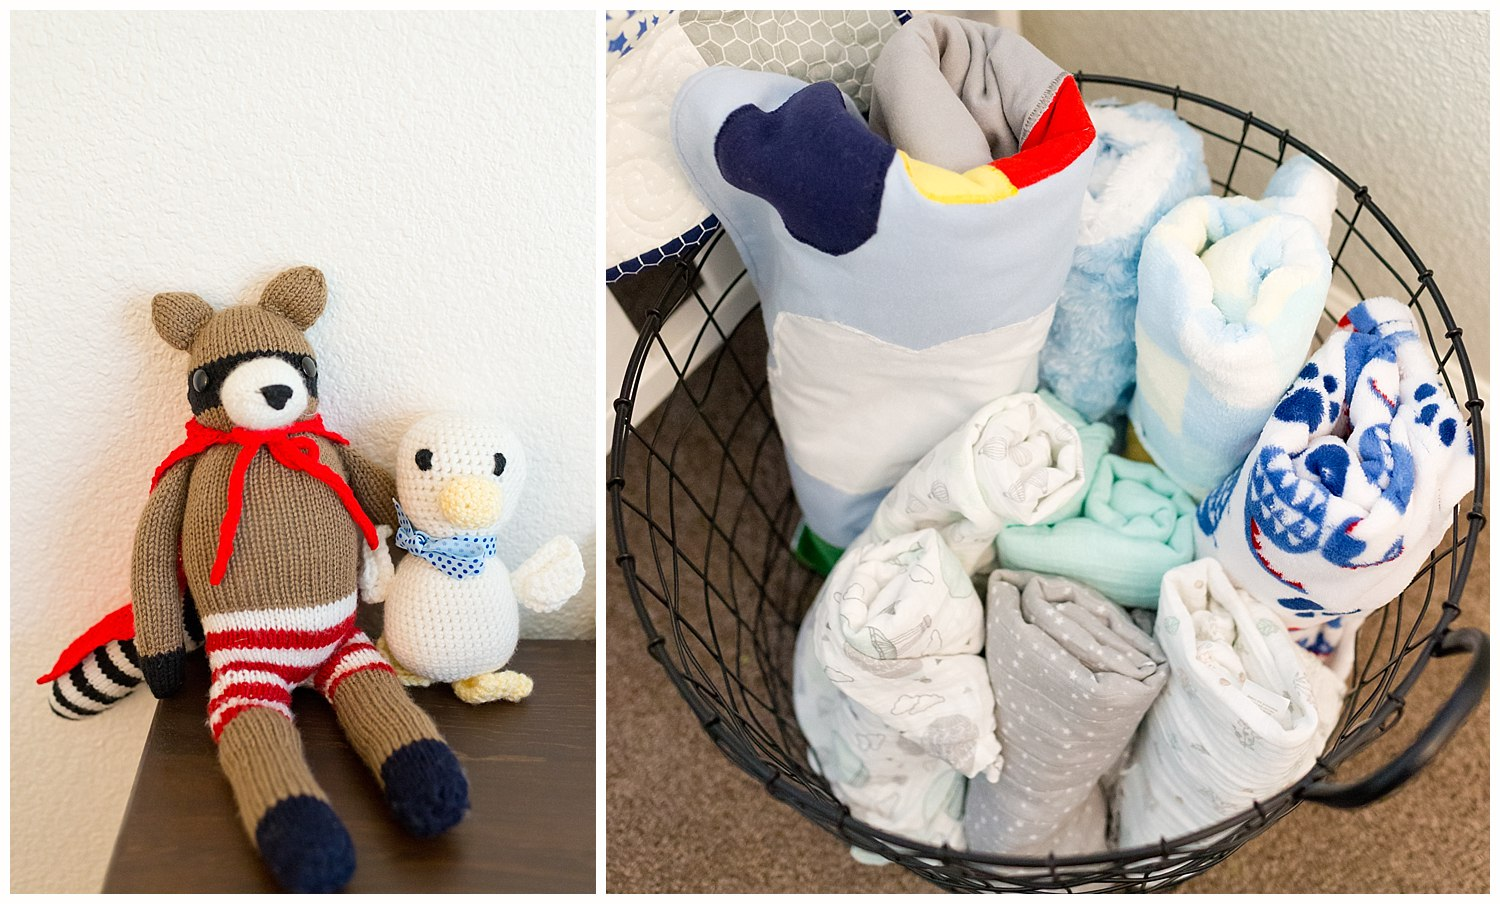 nursery photos with blankets and stuffed animals